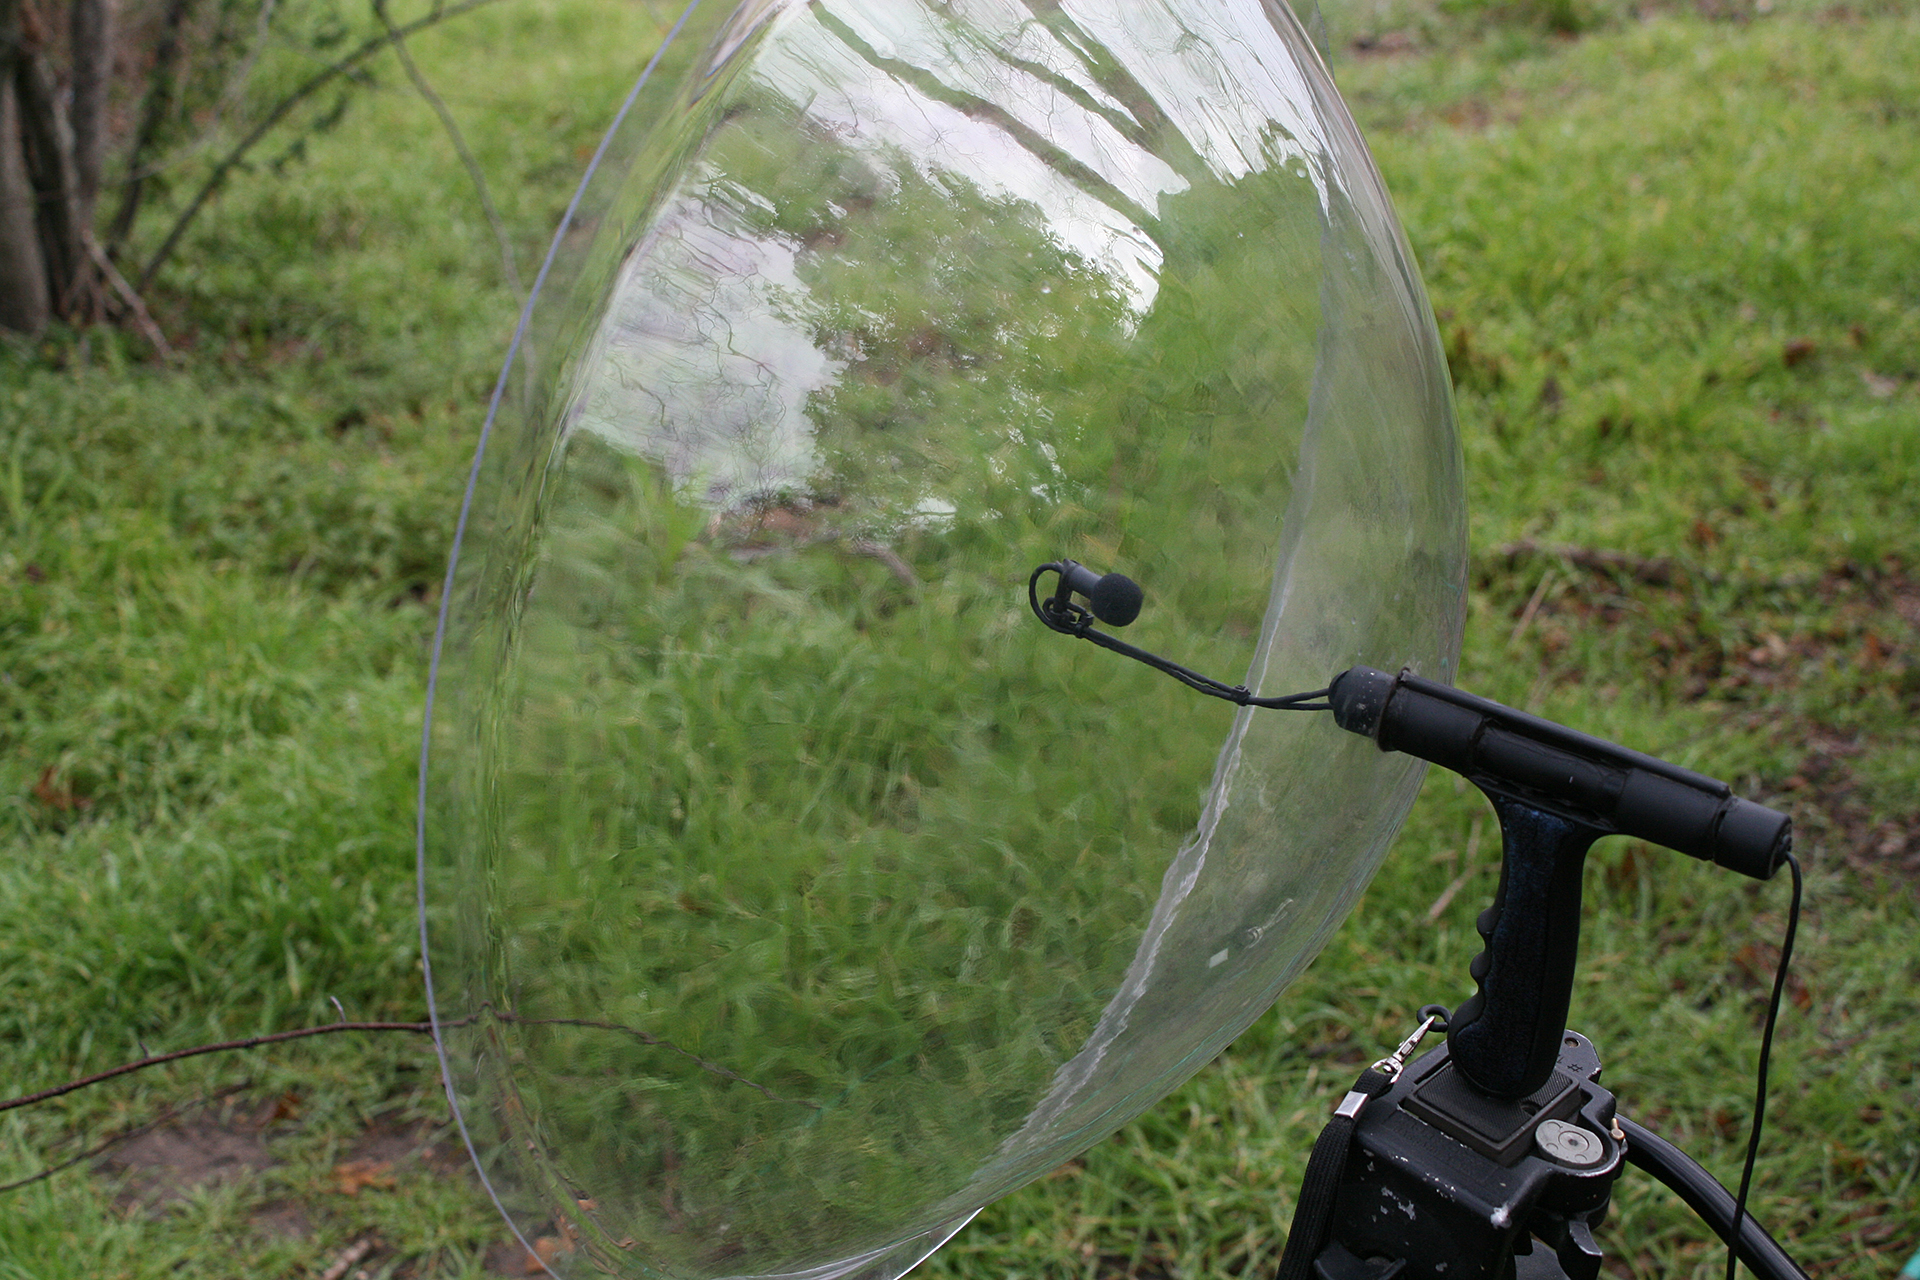 25838d1329326653-another-diy-parabolic-microphone-parabolic_mic-1.jpg